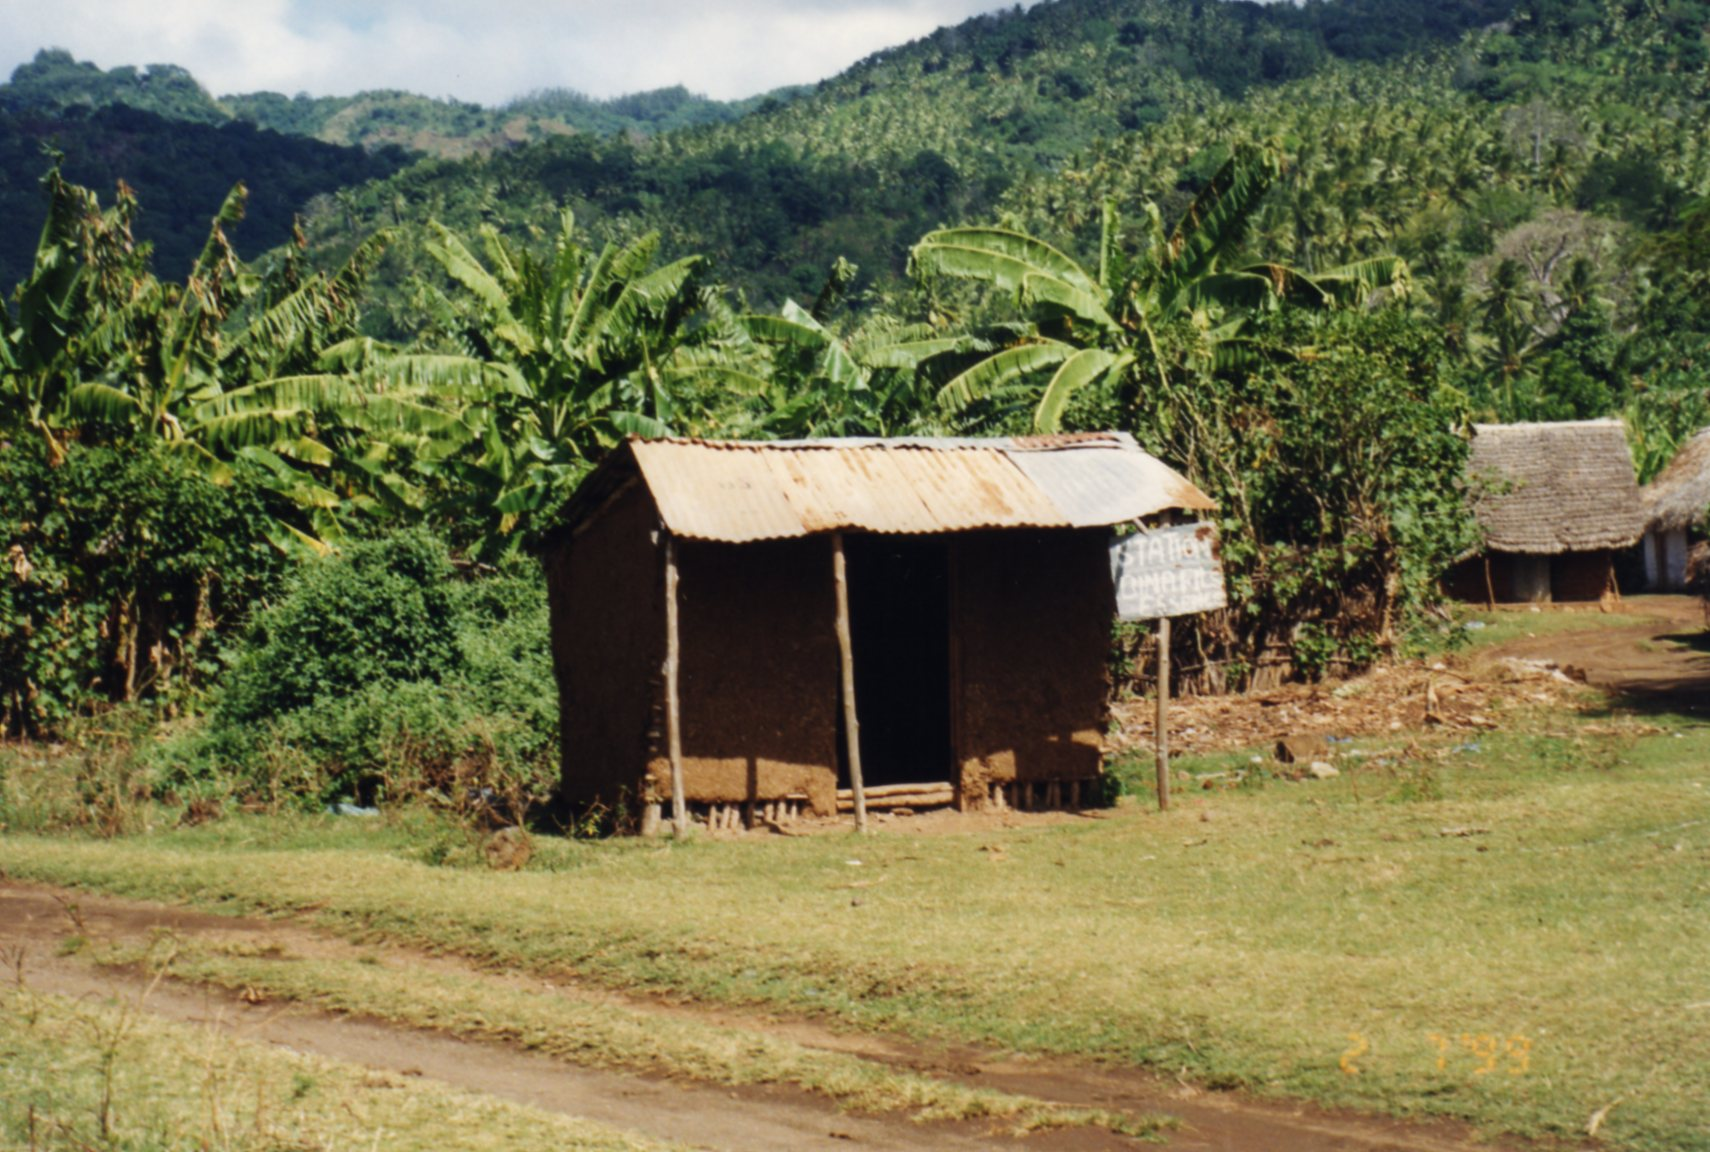 Fuel stop at Fomboni - yes, true story!